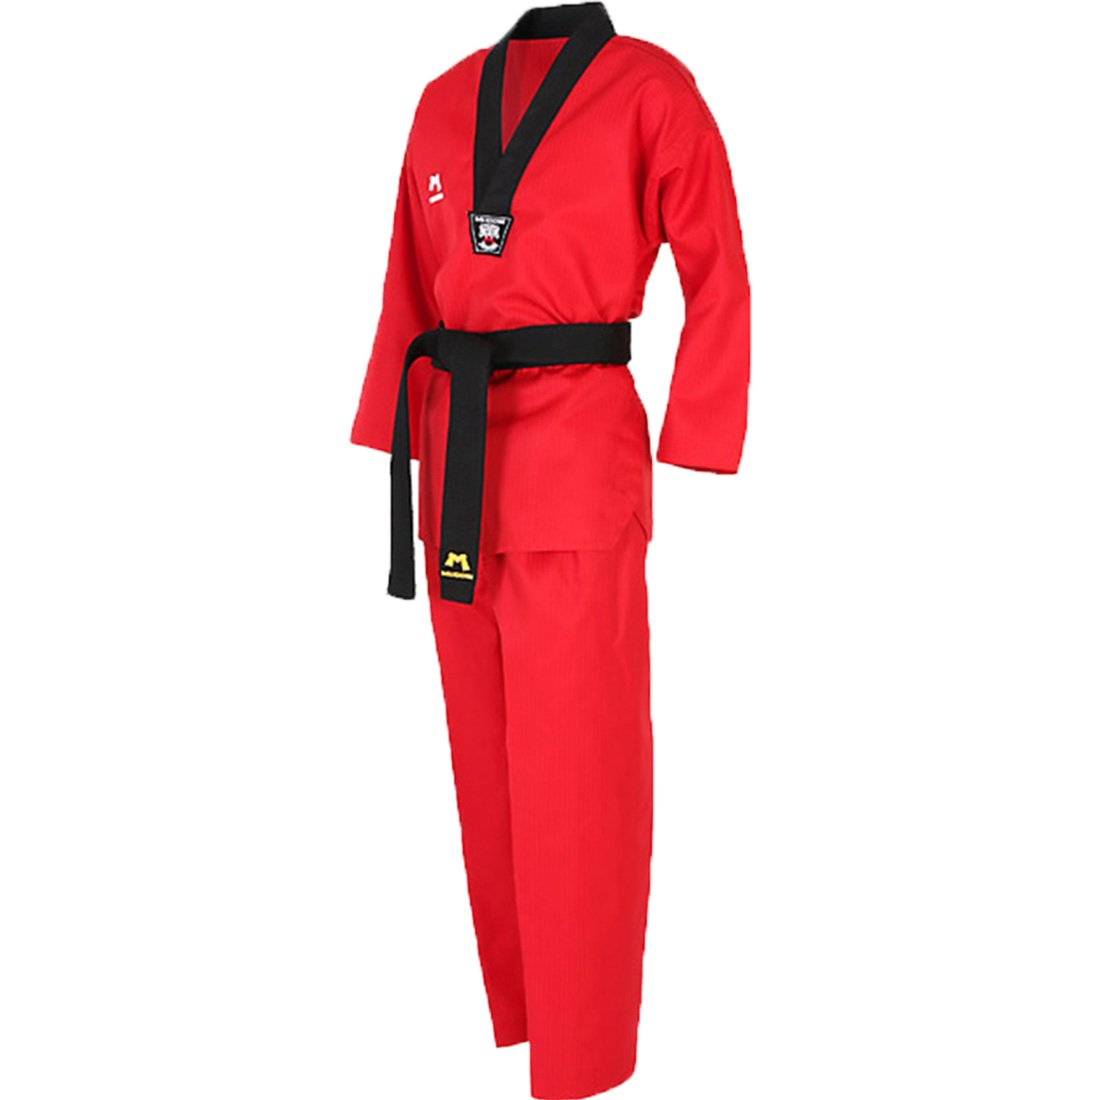 Mudoin Taekwondo 3 Color Uniform for Adults V-Neck Blue Red Black TKD Martial Arts Akido Hapkido WTF (190(180-190cm)(5.90-6.23ft), Red) by Mudoin